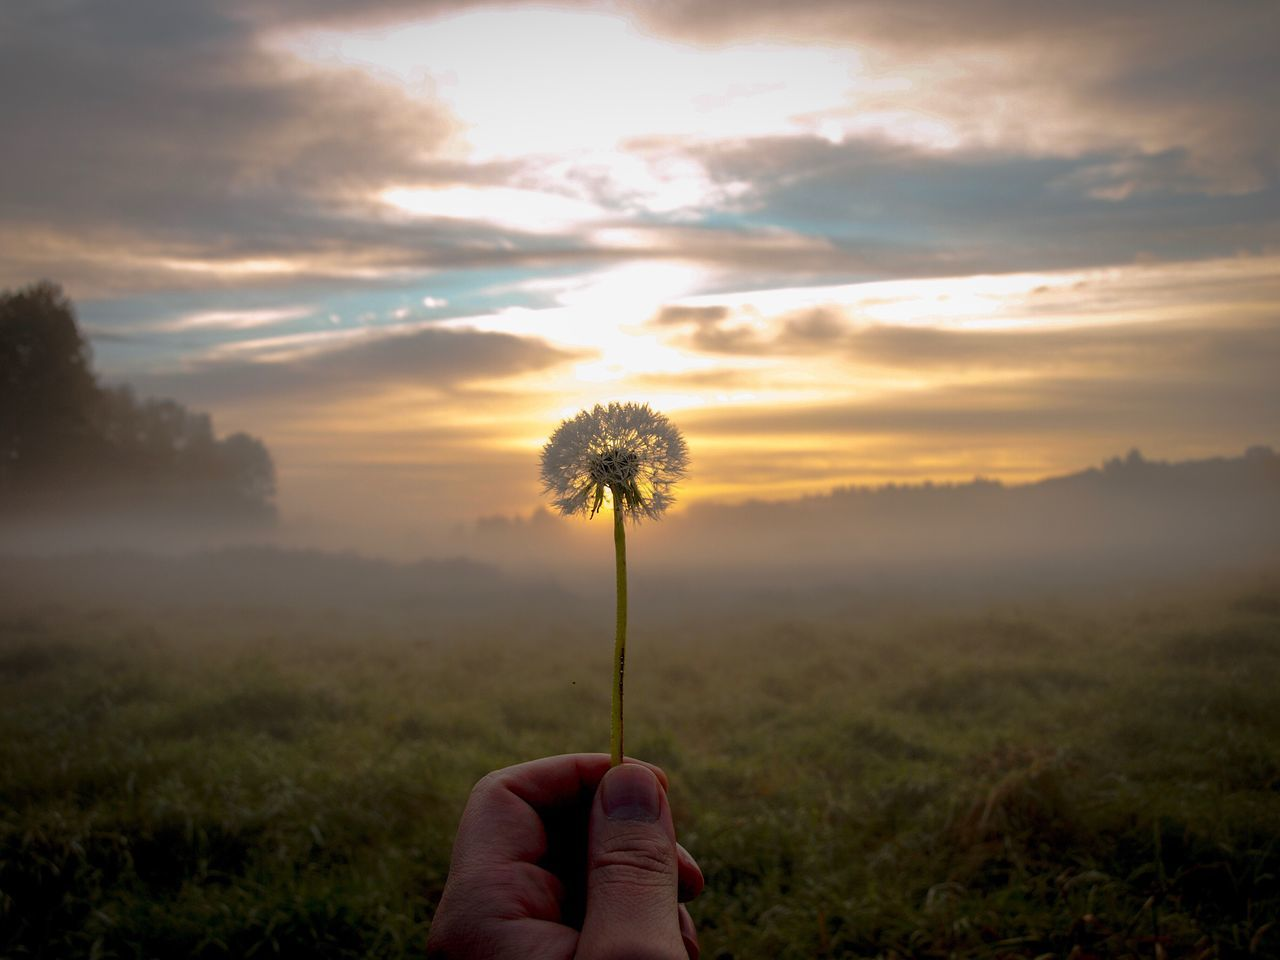 Dewy morning Human Hand Beauty In Nature Nature Sky Growth Dandelion Fog Sunrise